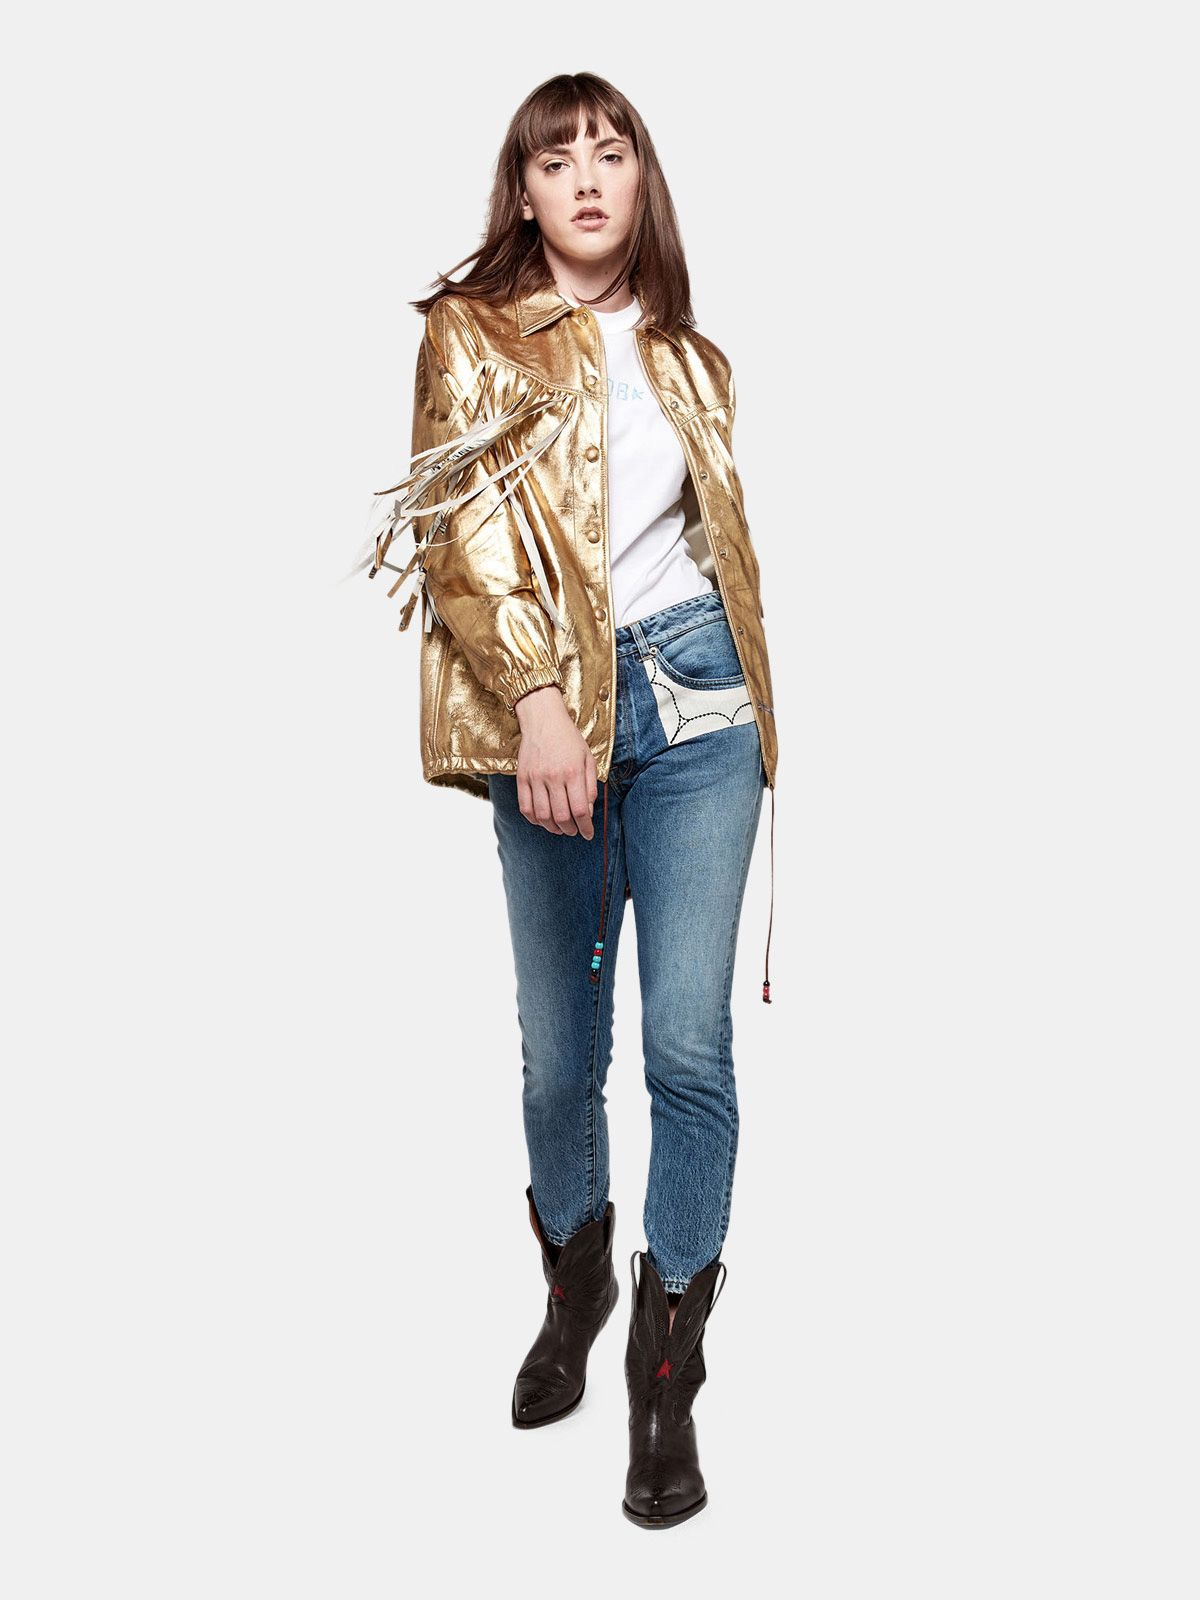 Golden Goose - Jolly jeans in cotton denim with embroidered patches in